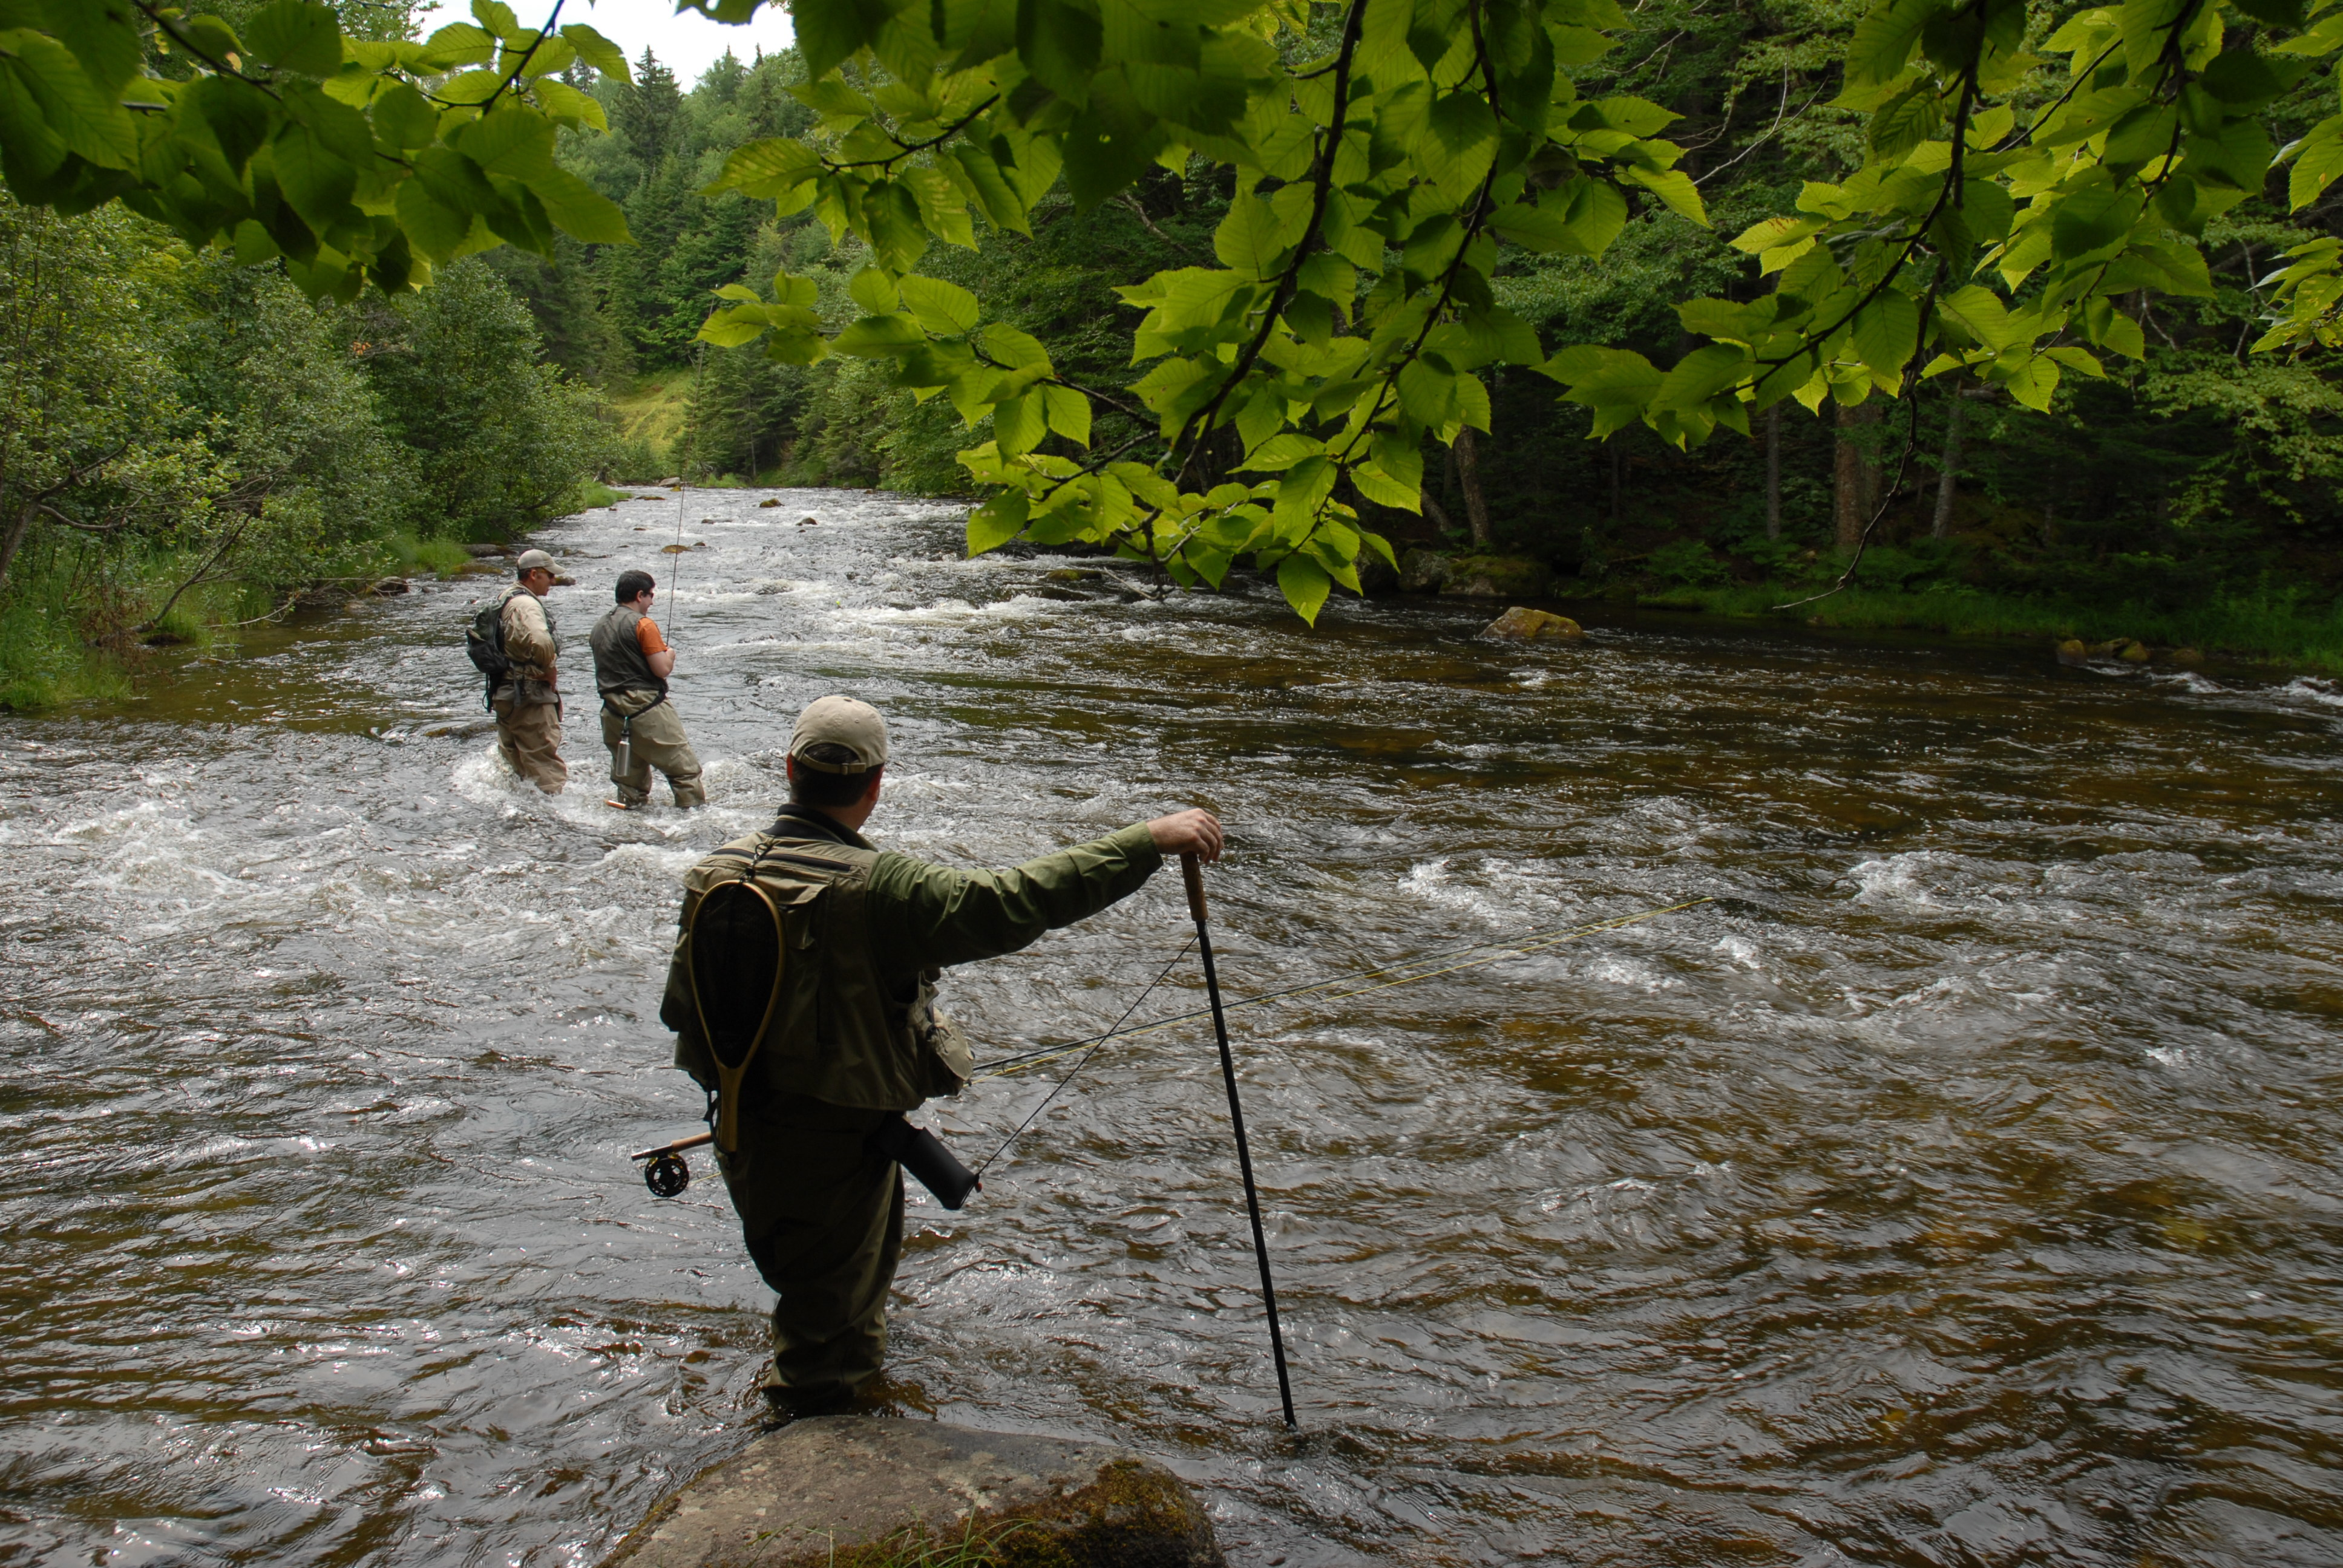 Lopstick Lodge And Cabins: Guided Fishing on the Upper COnnecticut RIver